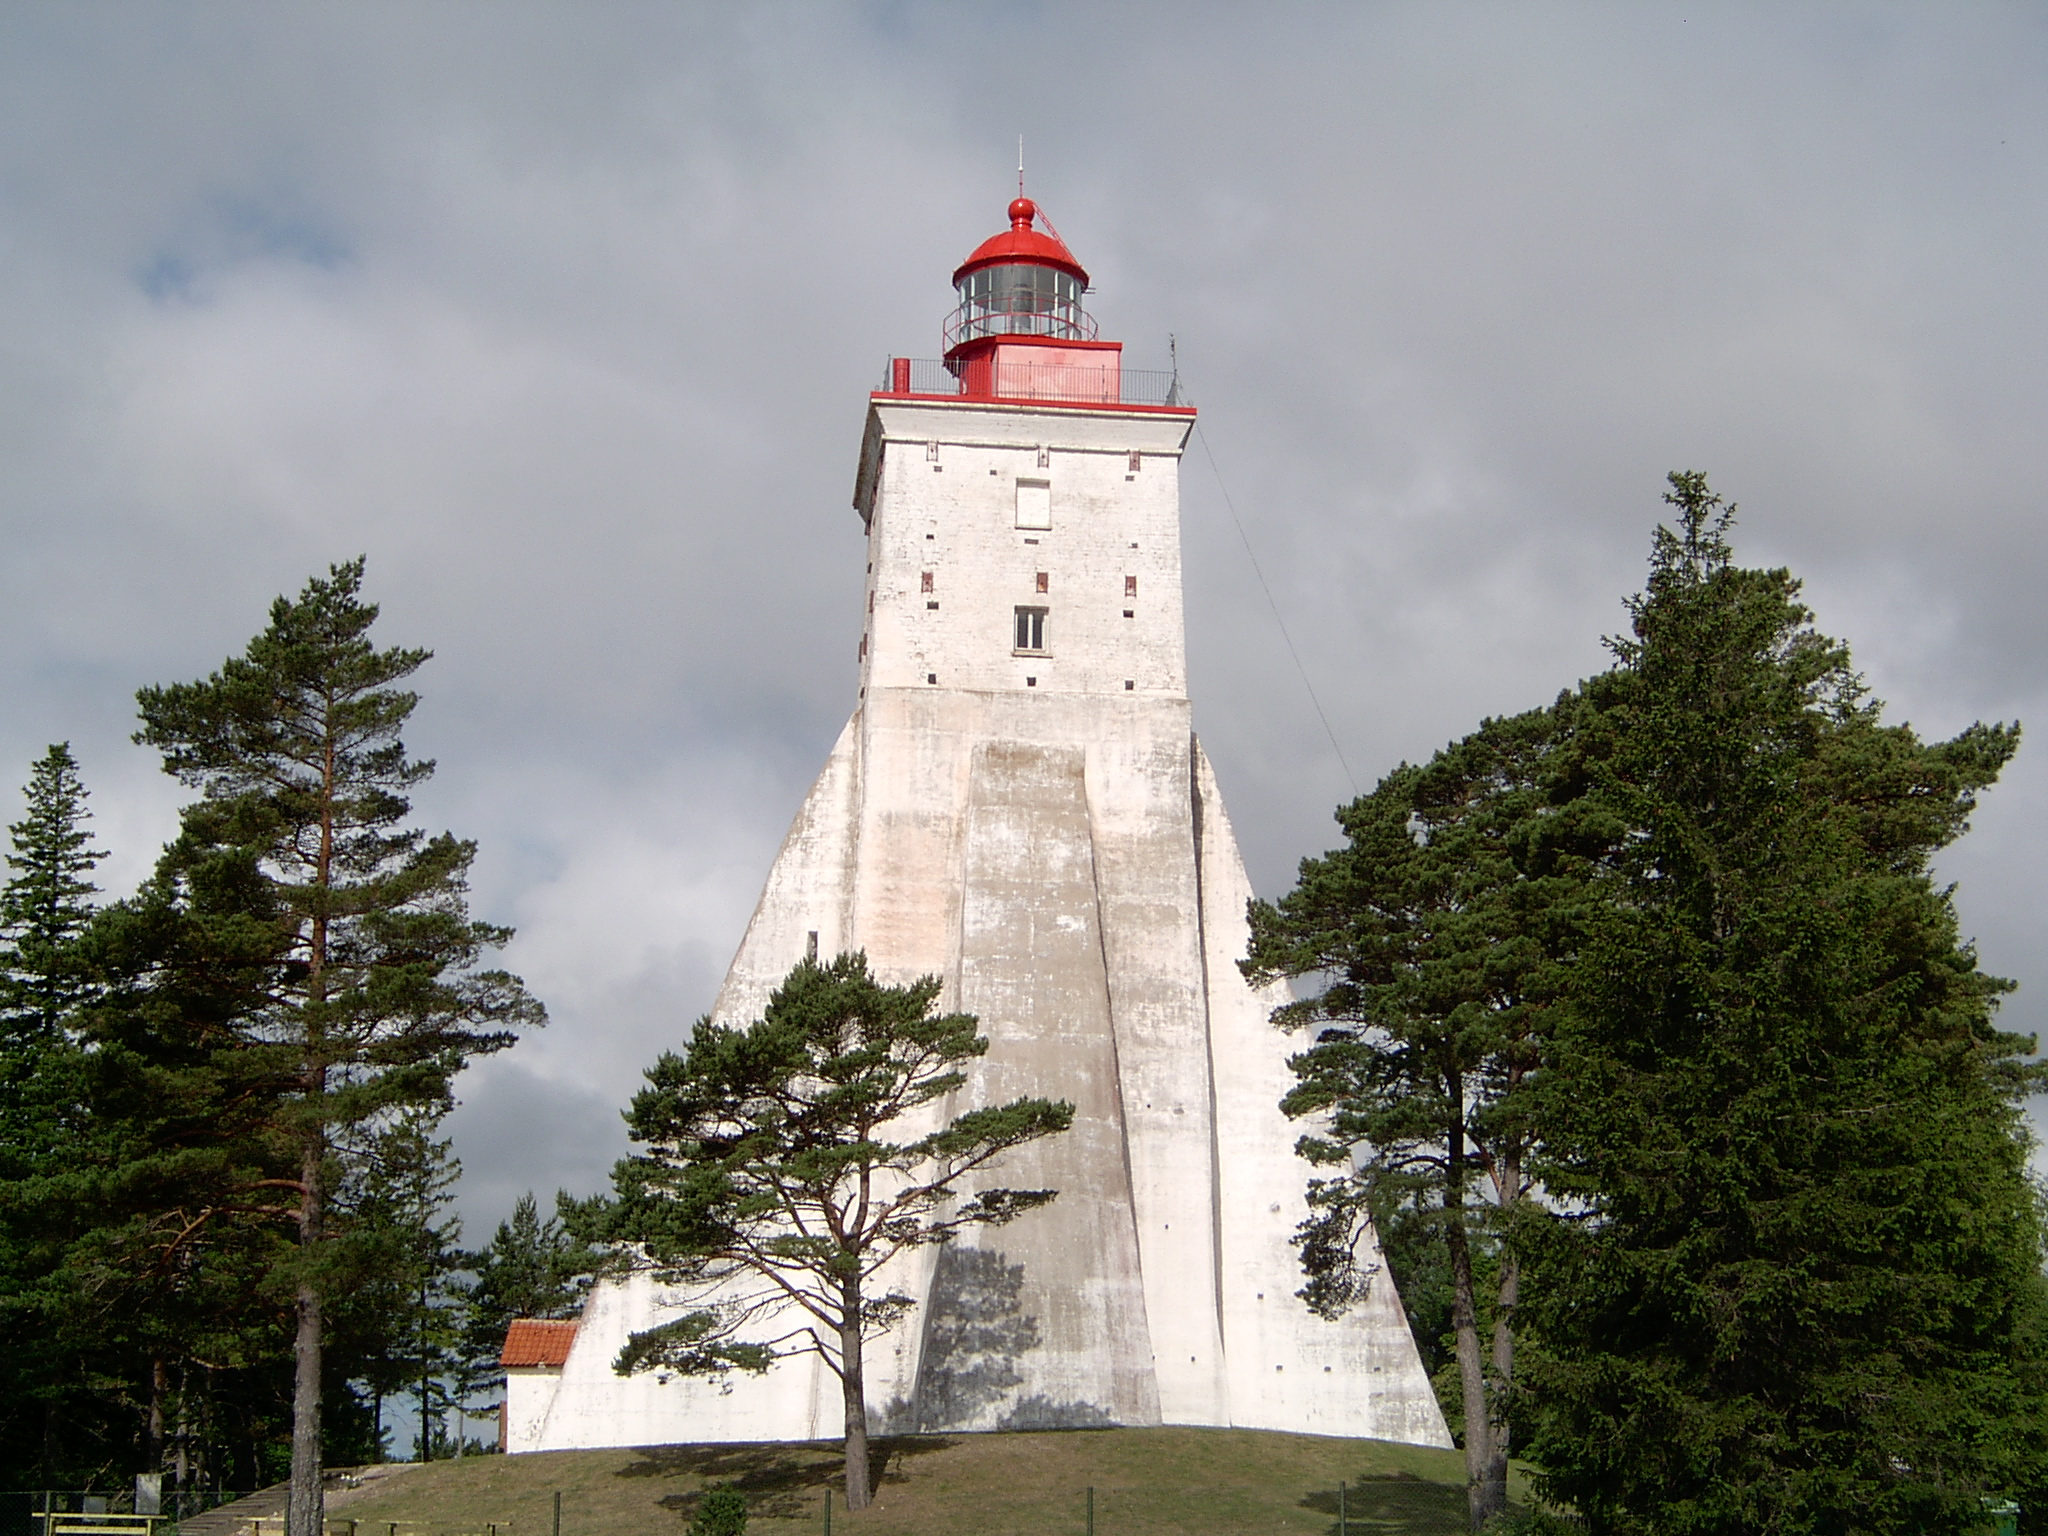 http://upload.wikimedia.org/wikipedia/commons/8/8e/K%C3%B5pu_lighthouse_2003.jpg